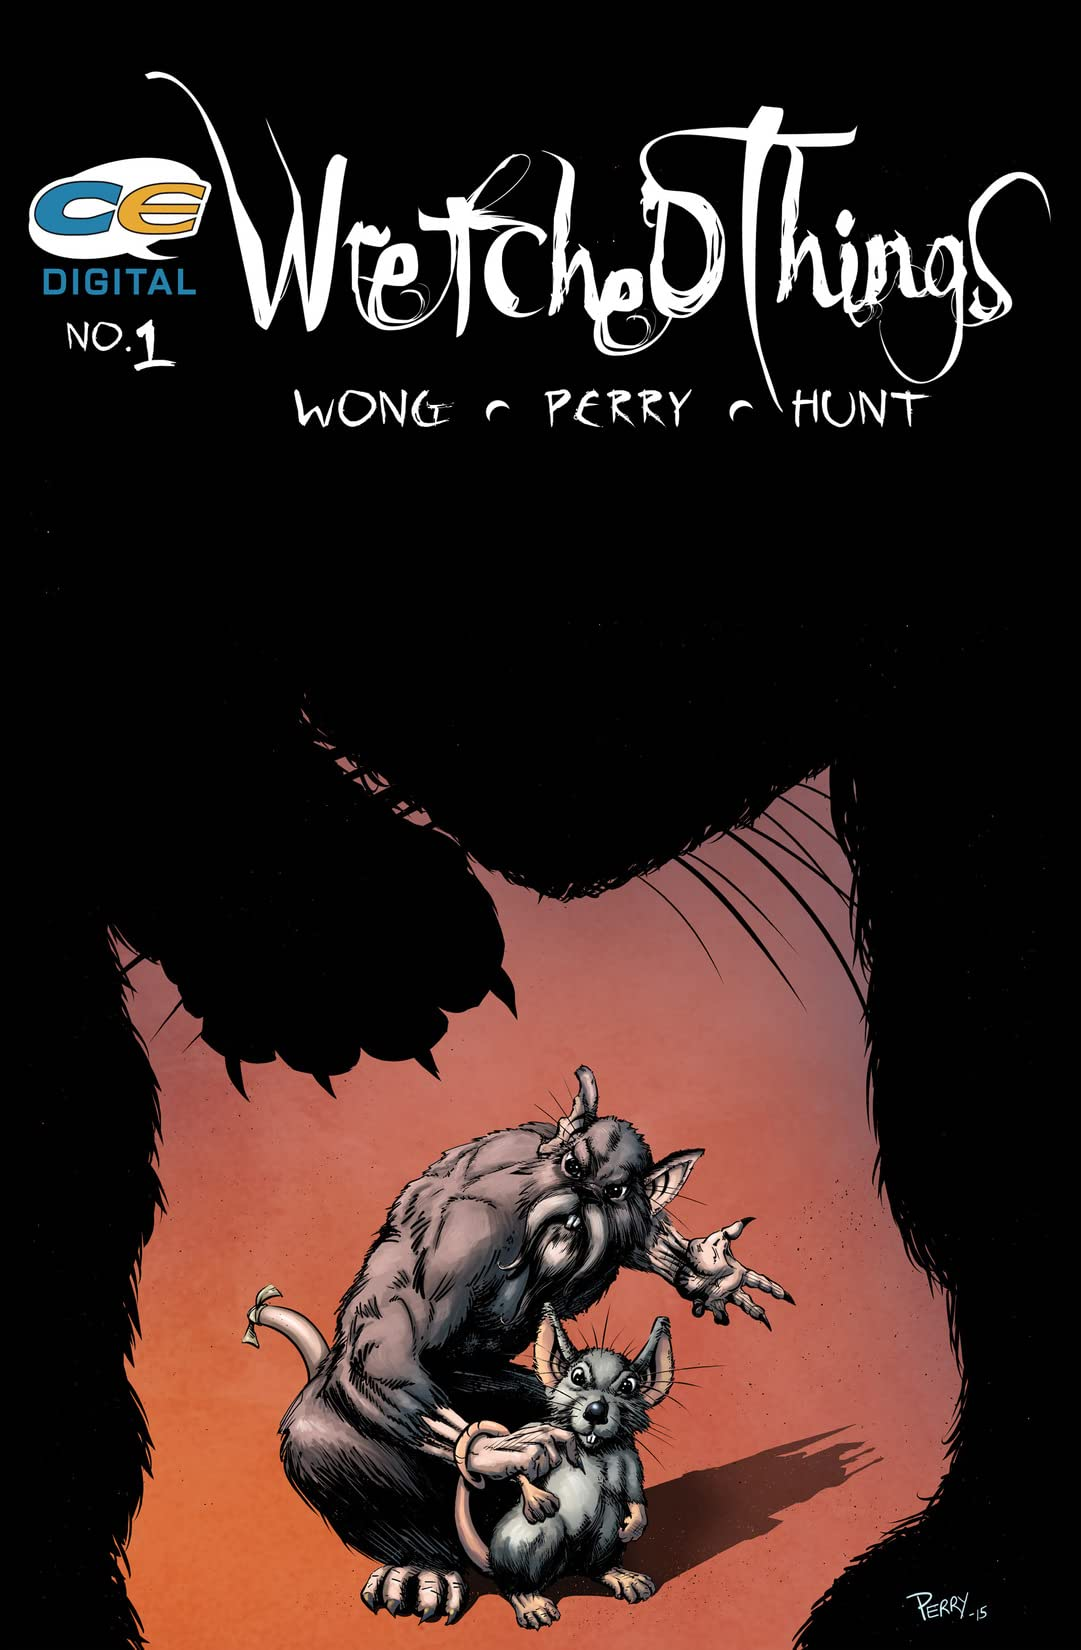 Wretched Things #1